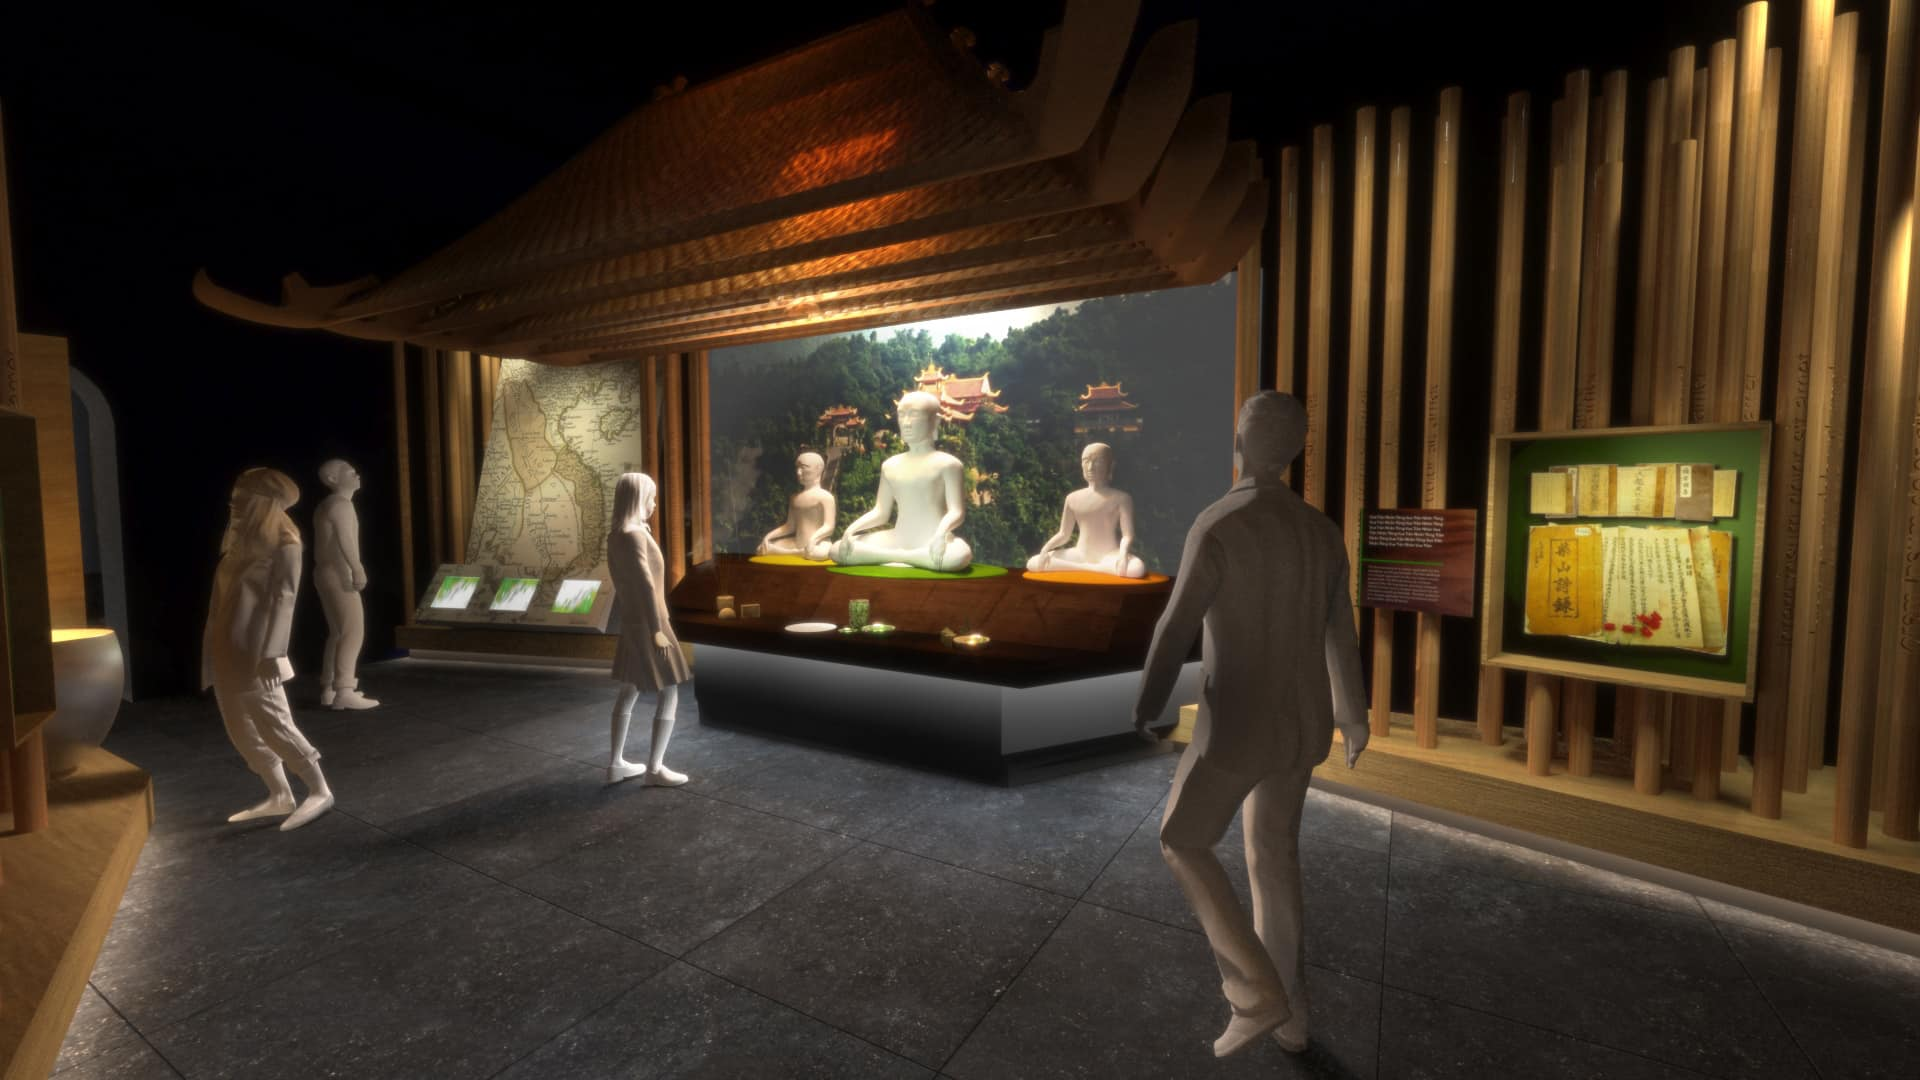 architectural visualization Exhibition of the Enlightened King